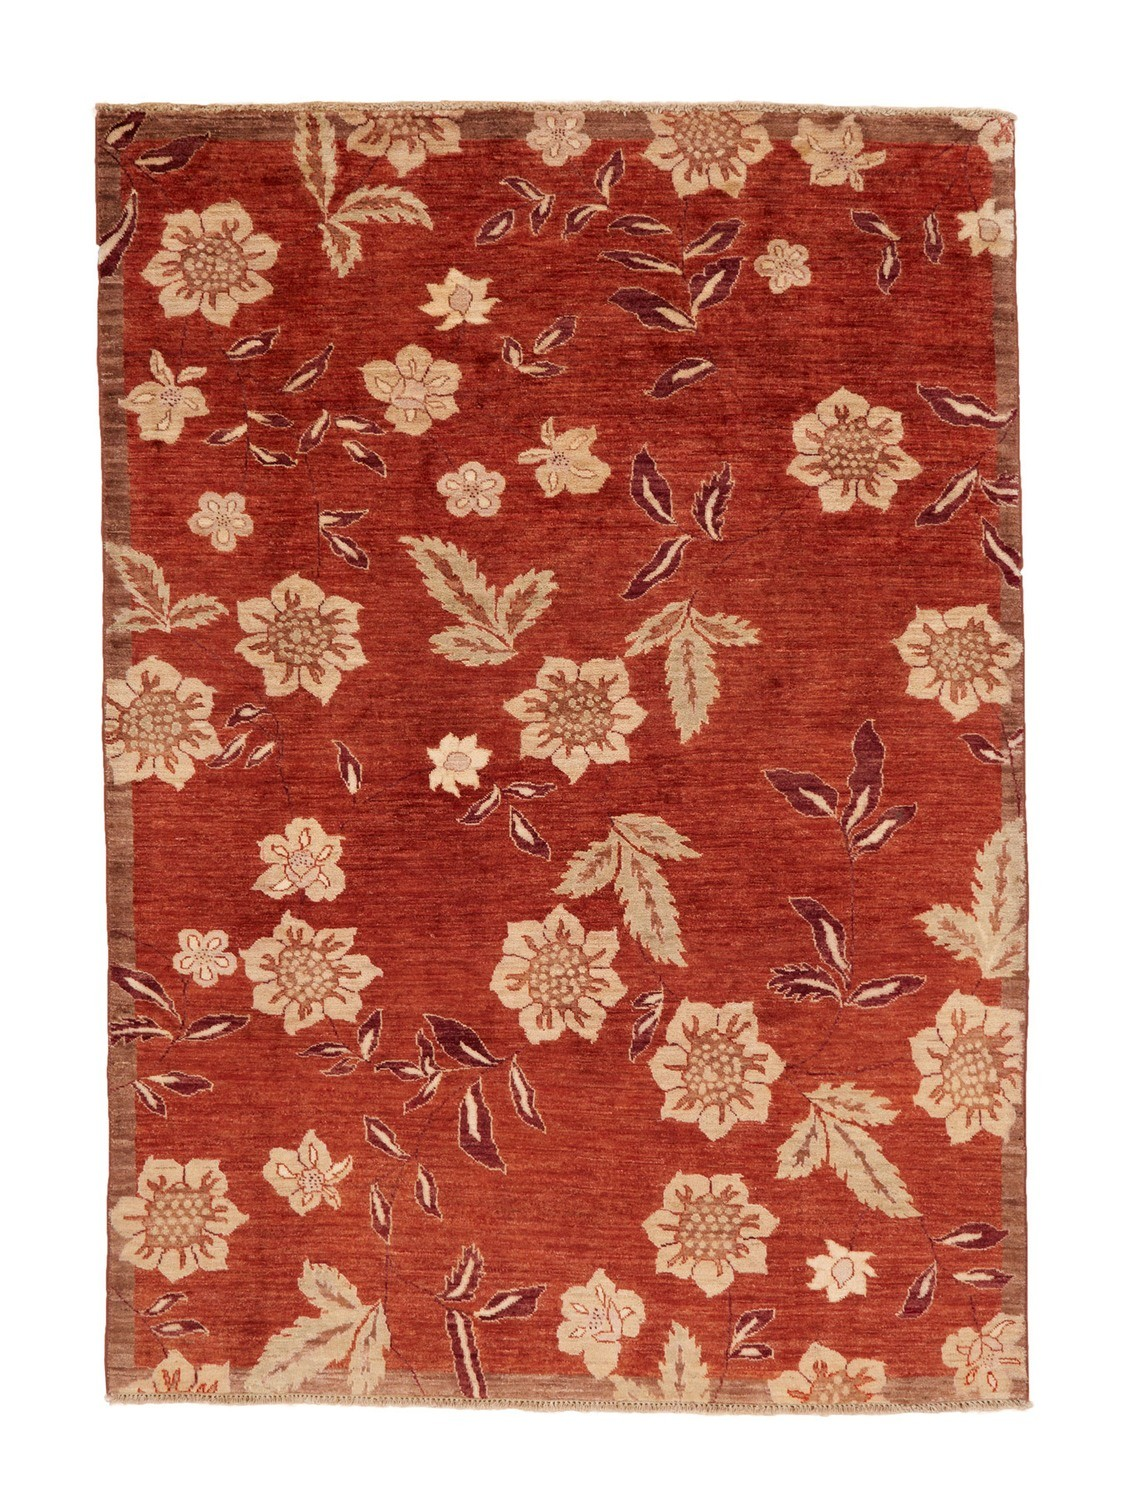 Pakistan Khyber in natural dyes size 2.37 x 1.69 was £1,295